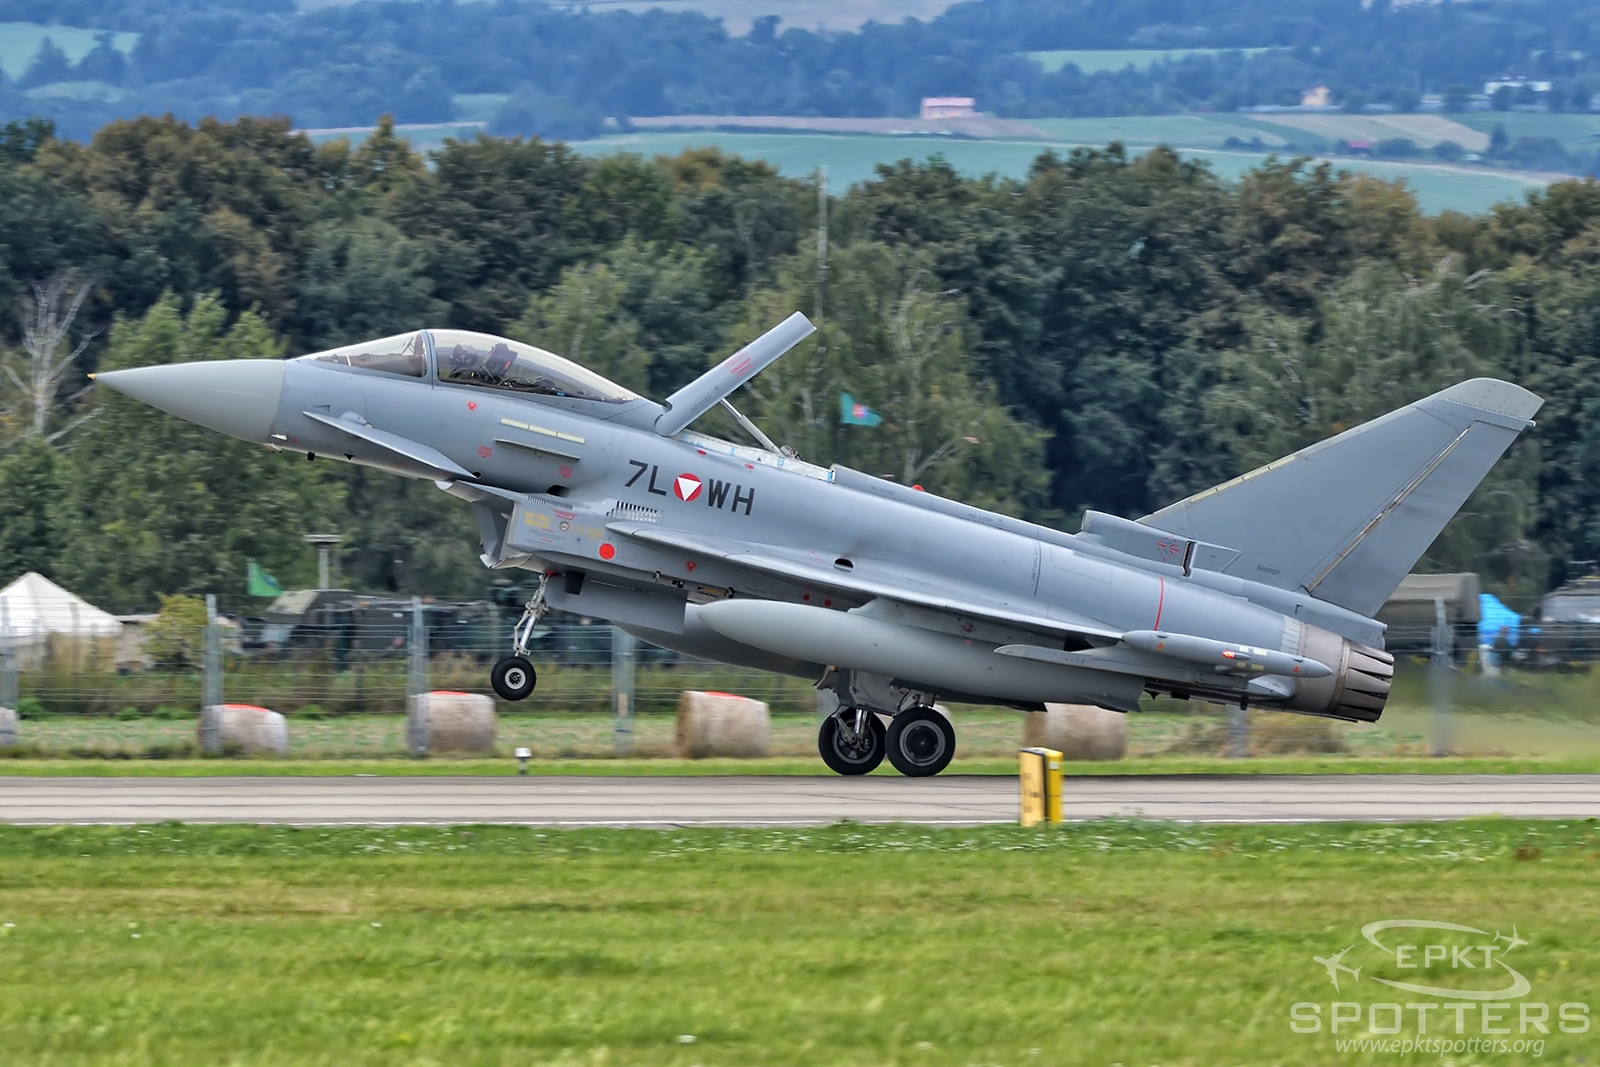 7L-WH - Eurofighter EF-2000 Typhoon S (Austria - Air Force) / Leos Janacek Airport - Ostrava Czech Republic [LKMT/OSR]